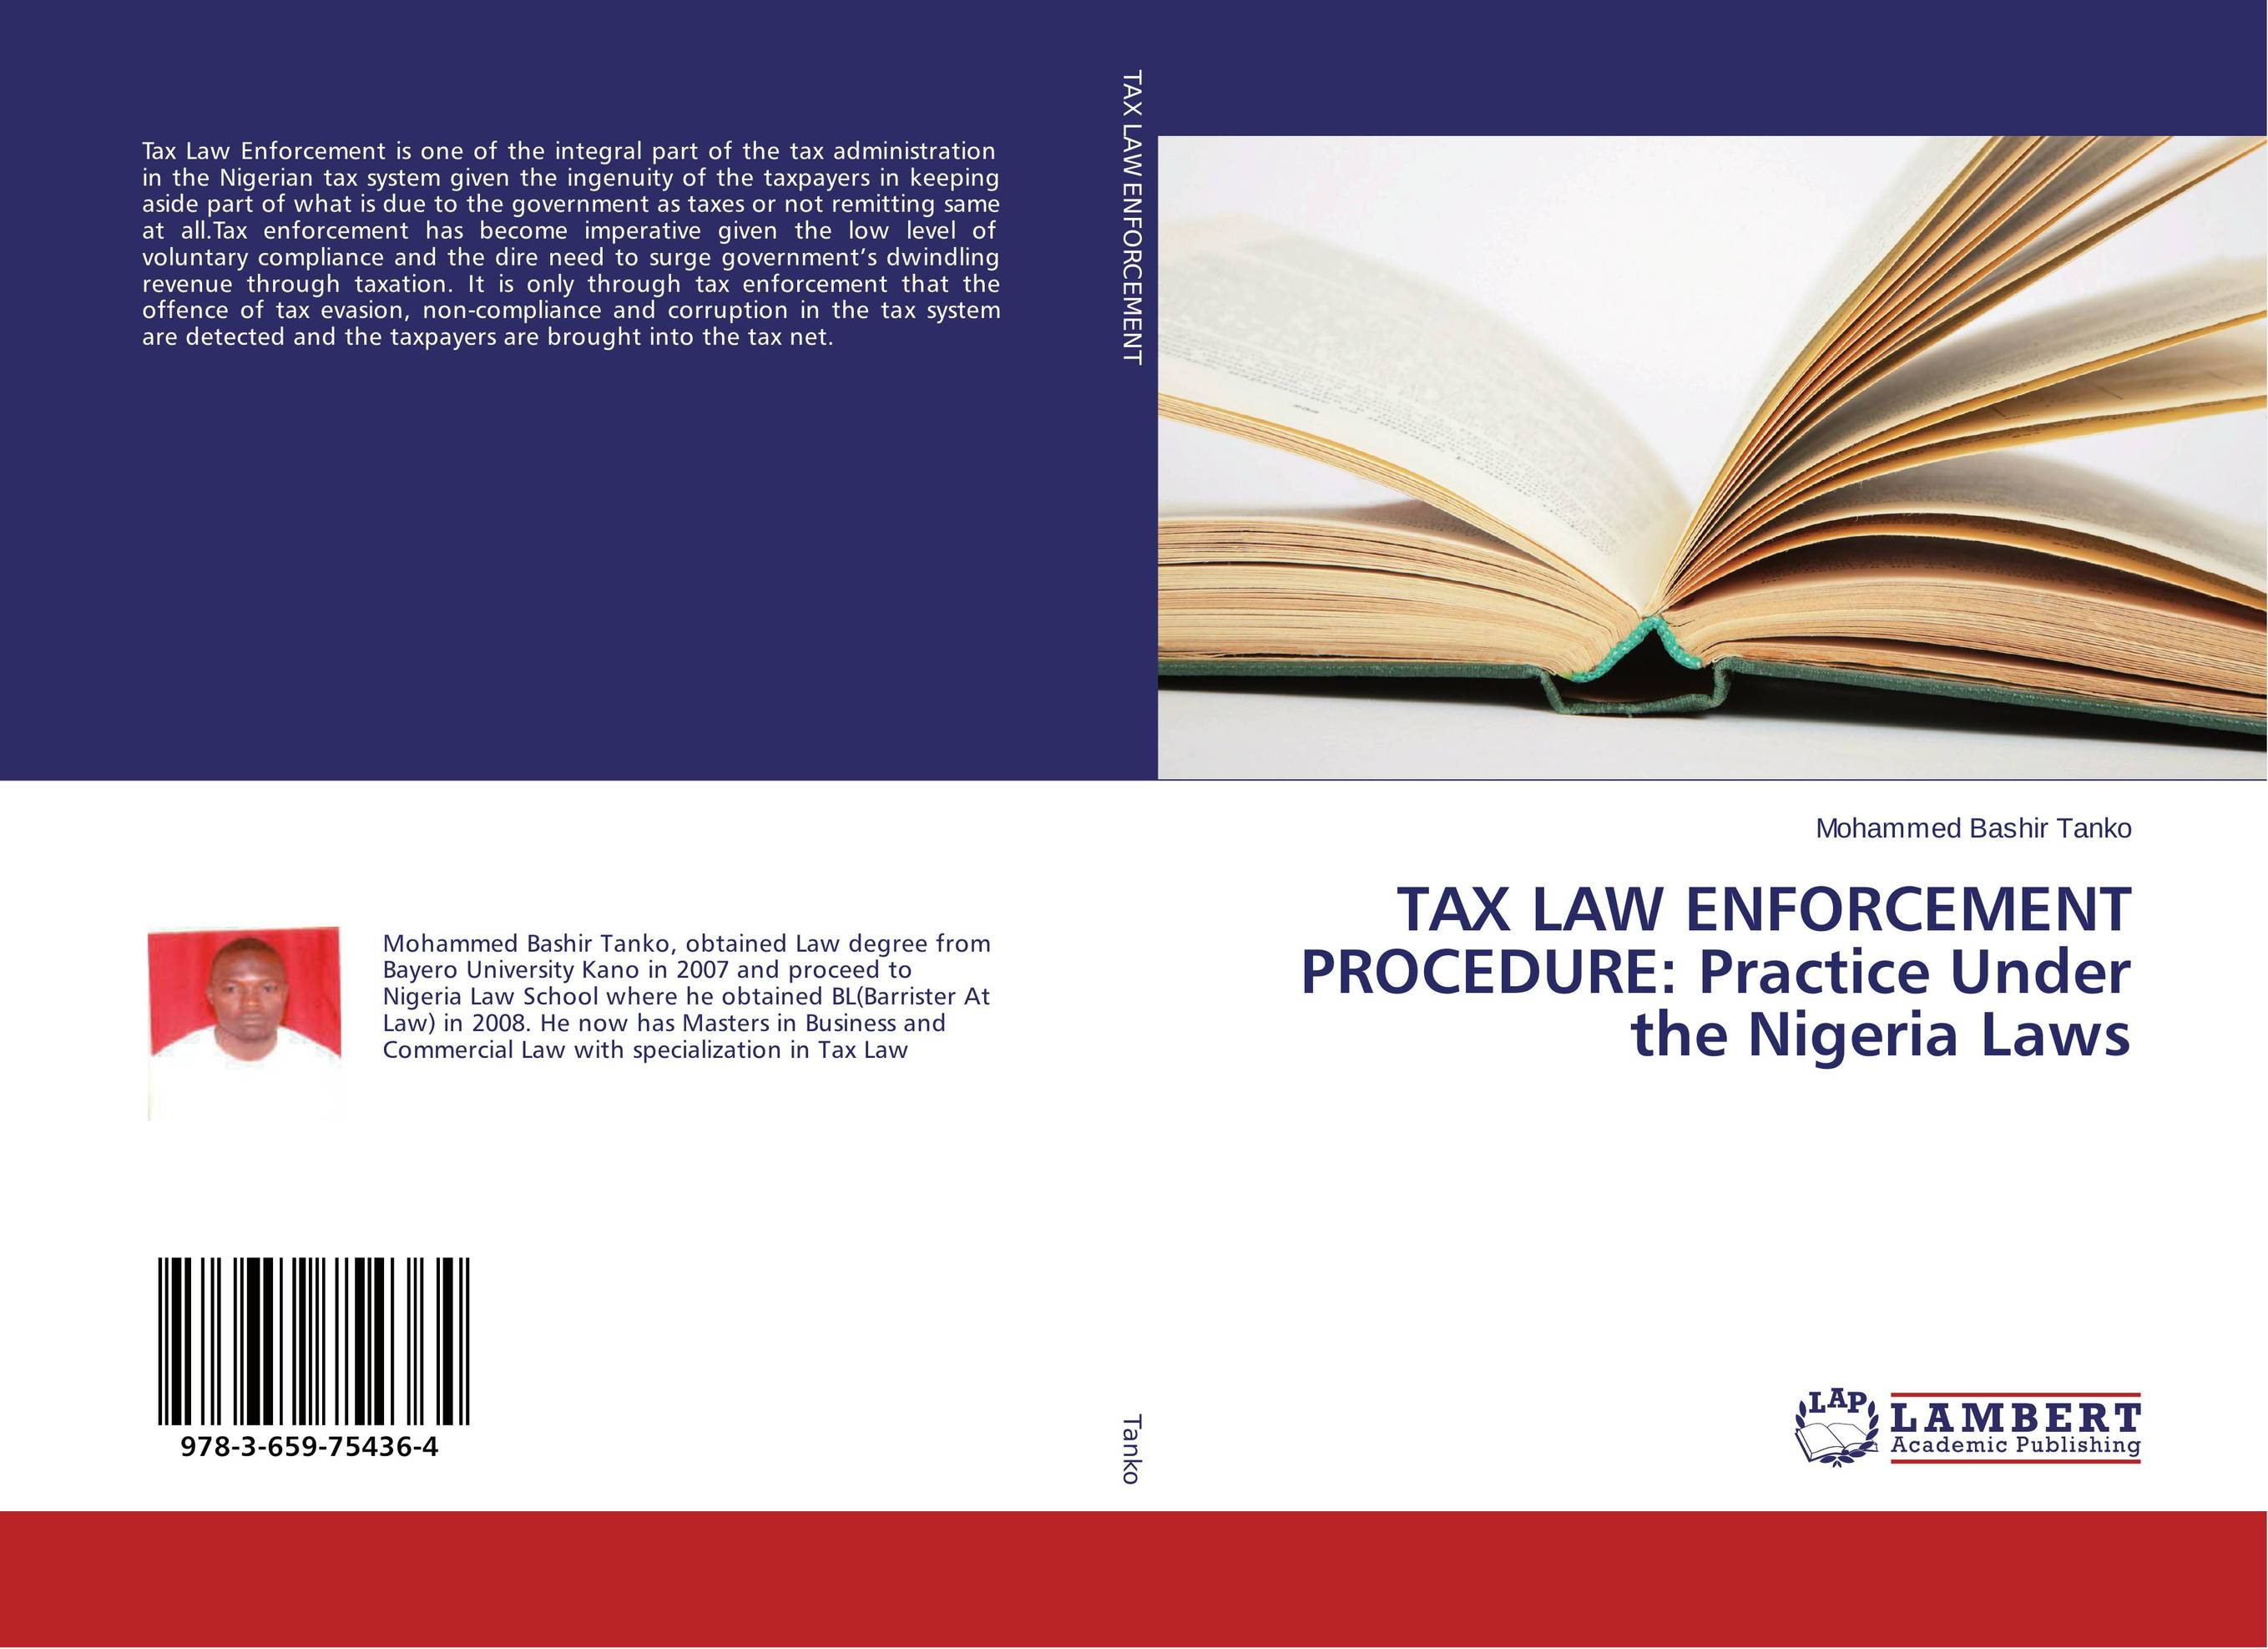 TAX LAW ENFORCEMENT PROCEDURE: Practice Under the Nigeria Laws elena fishtik sara laws are keeping silence during the war